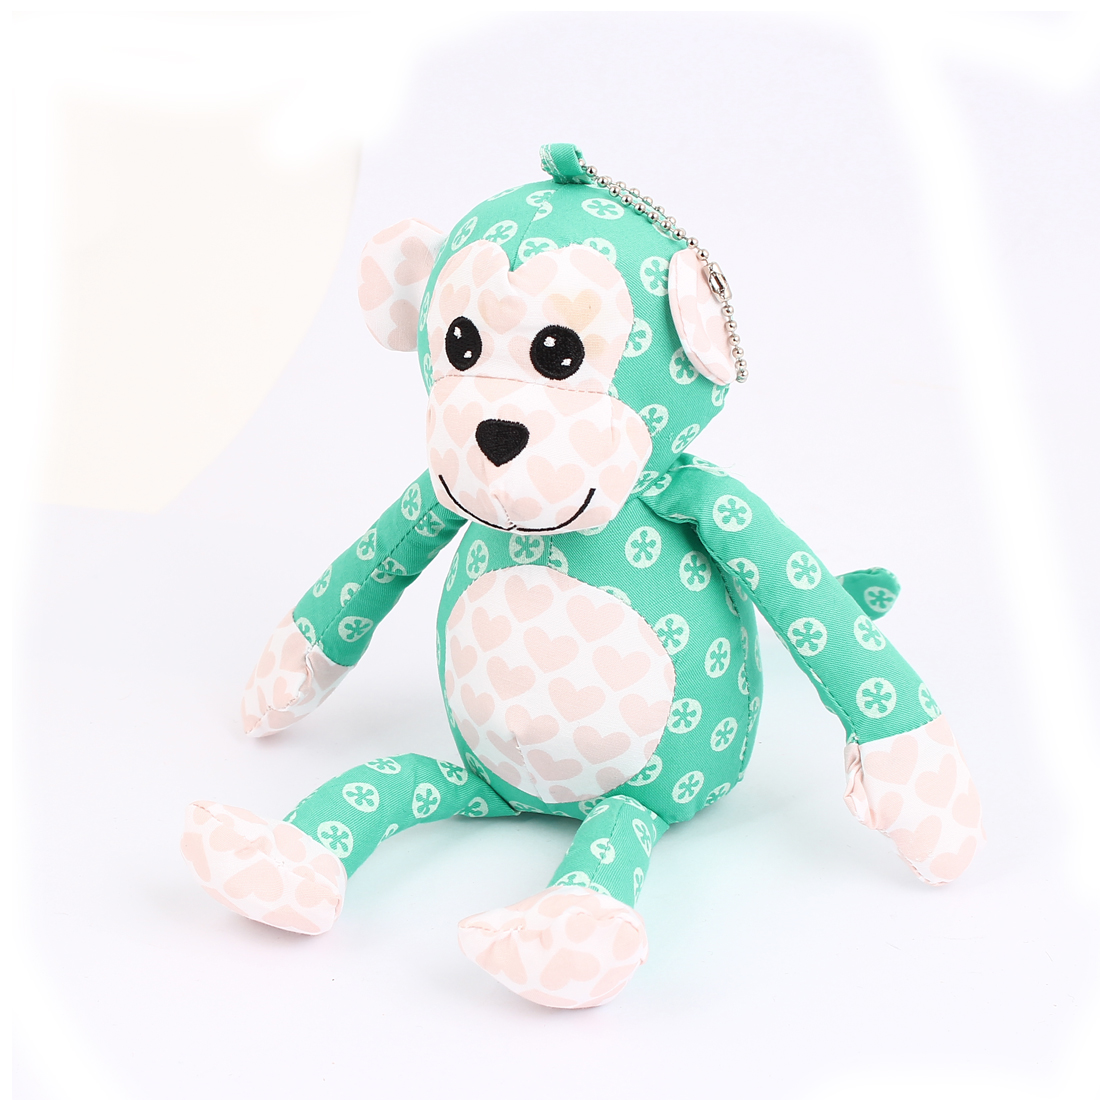 Metal Ball Chain Dotted Pattern Bag Ornament Monkey Doll Toy Pendant Green